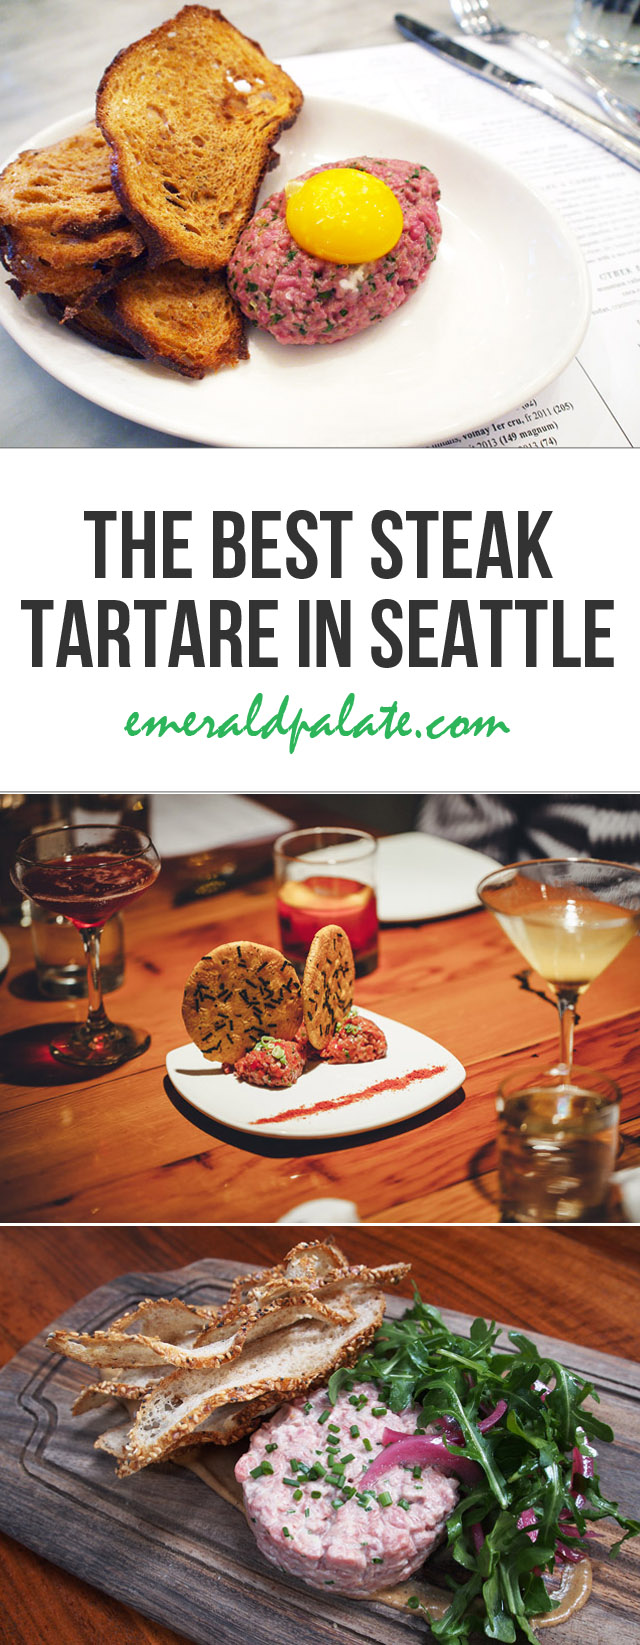 A roundup of where to find the best steak tartare in Seattle. If you love beef tartare like me, you must try all of these places. They are the best of the best in the Emerald City!